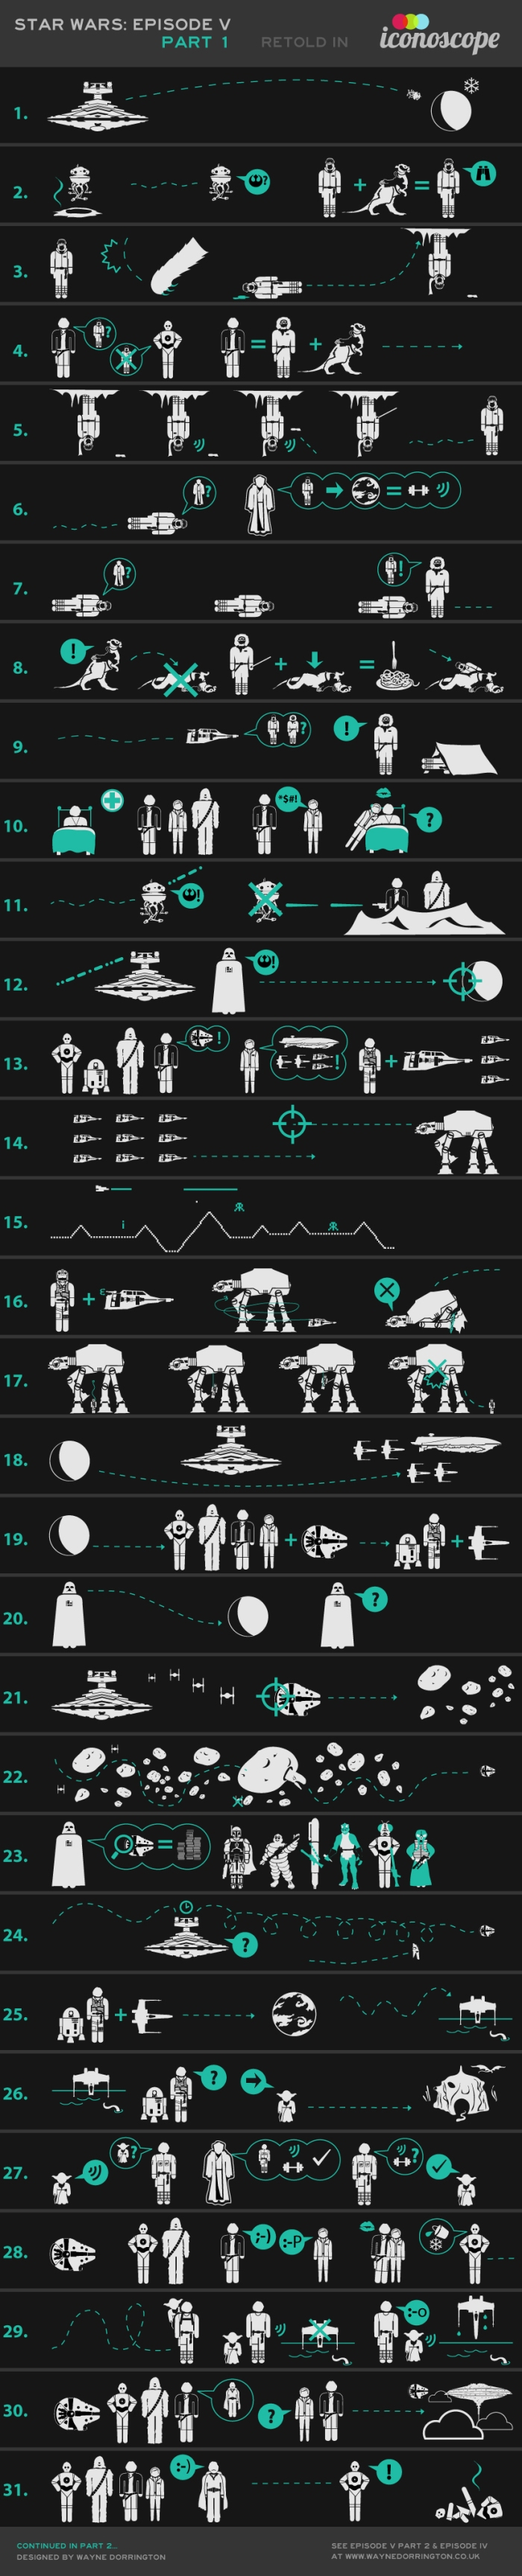 empire infographic pt 1